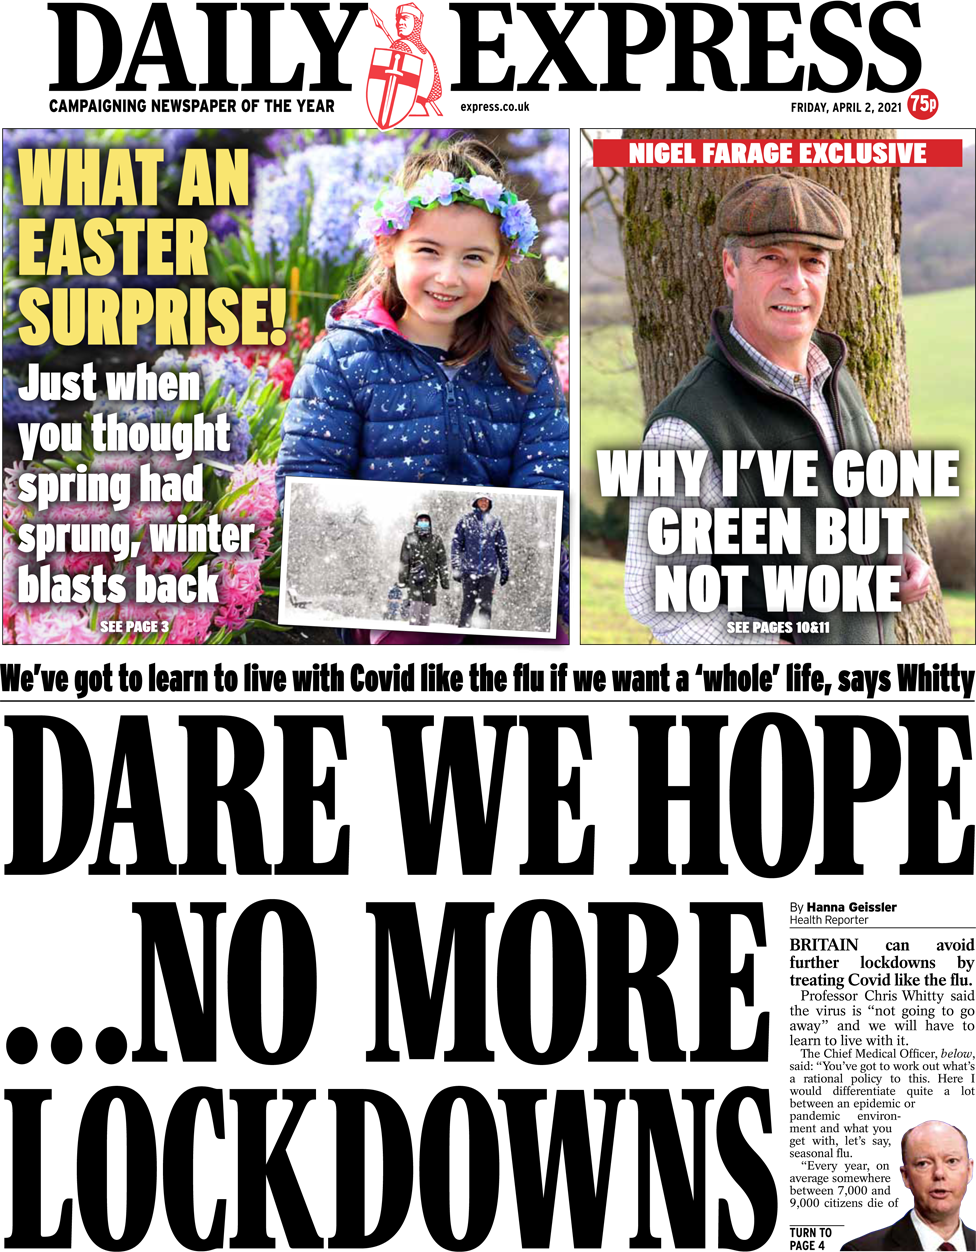 The Daily Express front page 2 April 2021